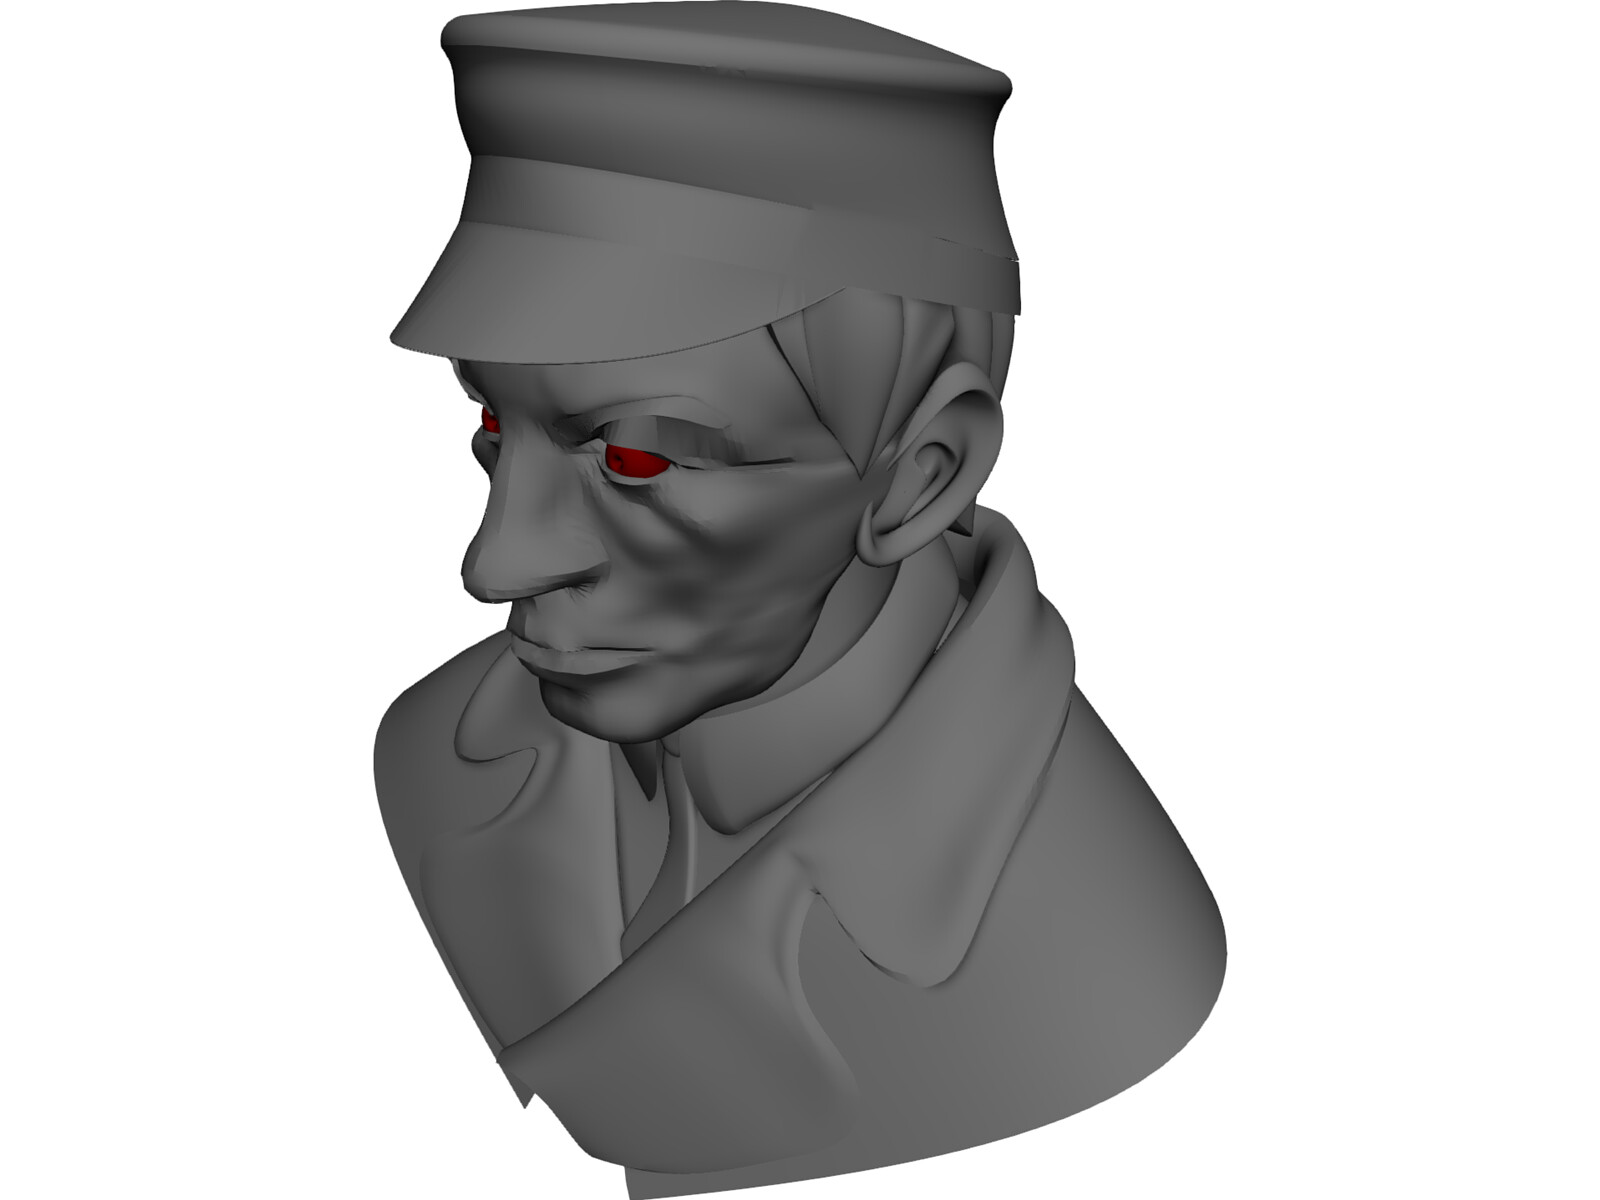 Man in Hat and Suit 3D Model